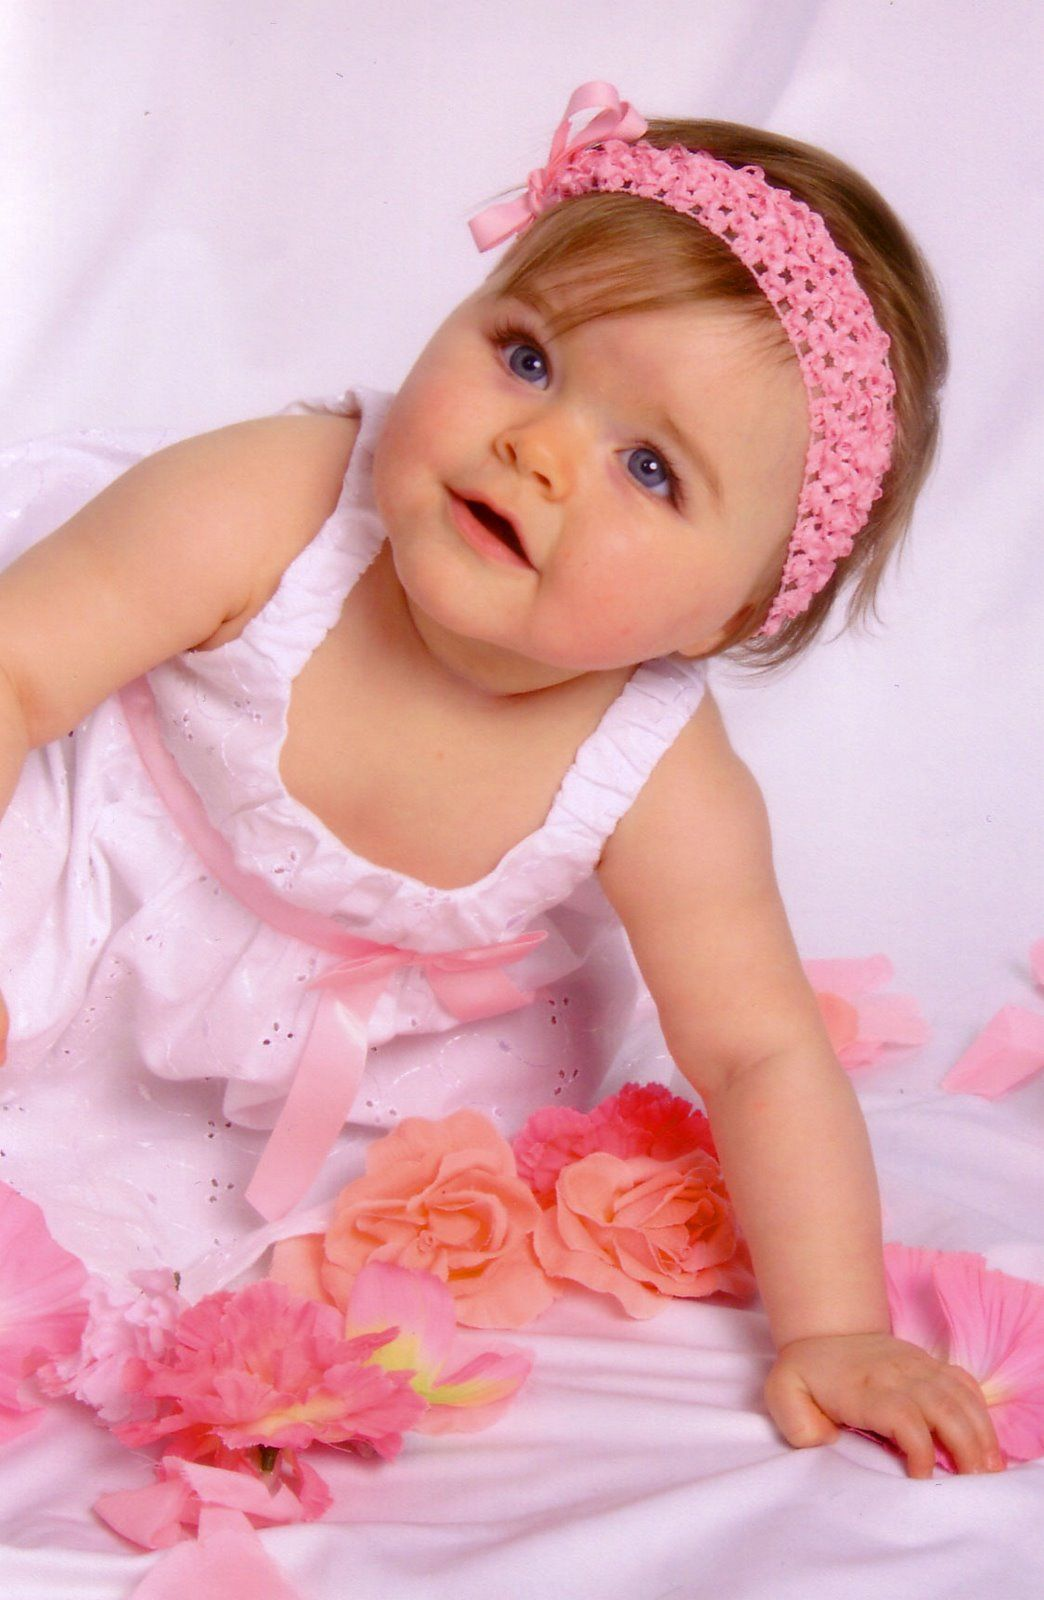 619484d58 cute baby girl with pink frock cute babies pictures - Apmay ...